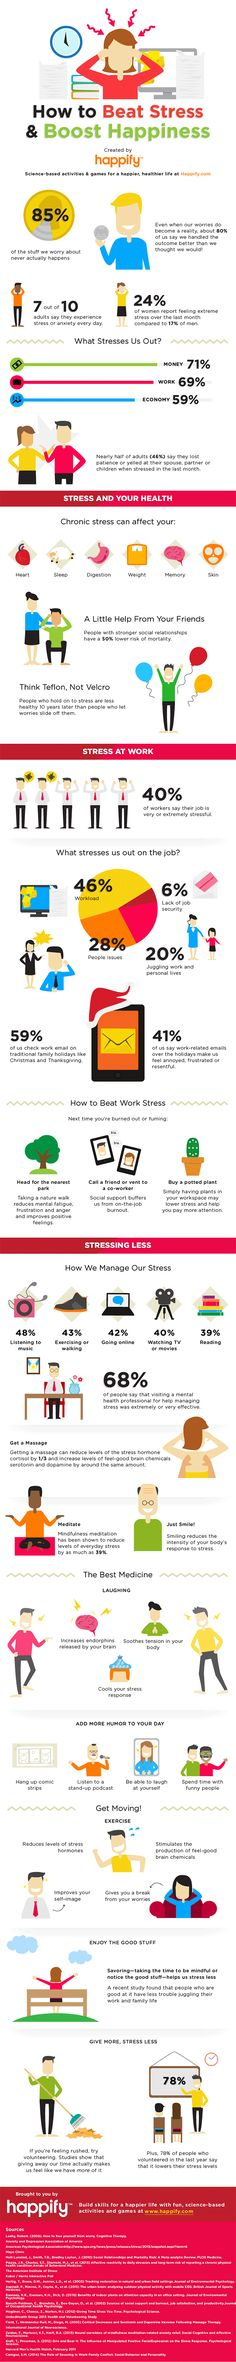 Infographic: How To Feel Happier And Less Stressed | Co.Create | creativity + culture + commerce